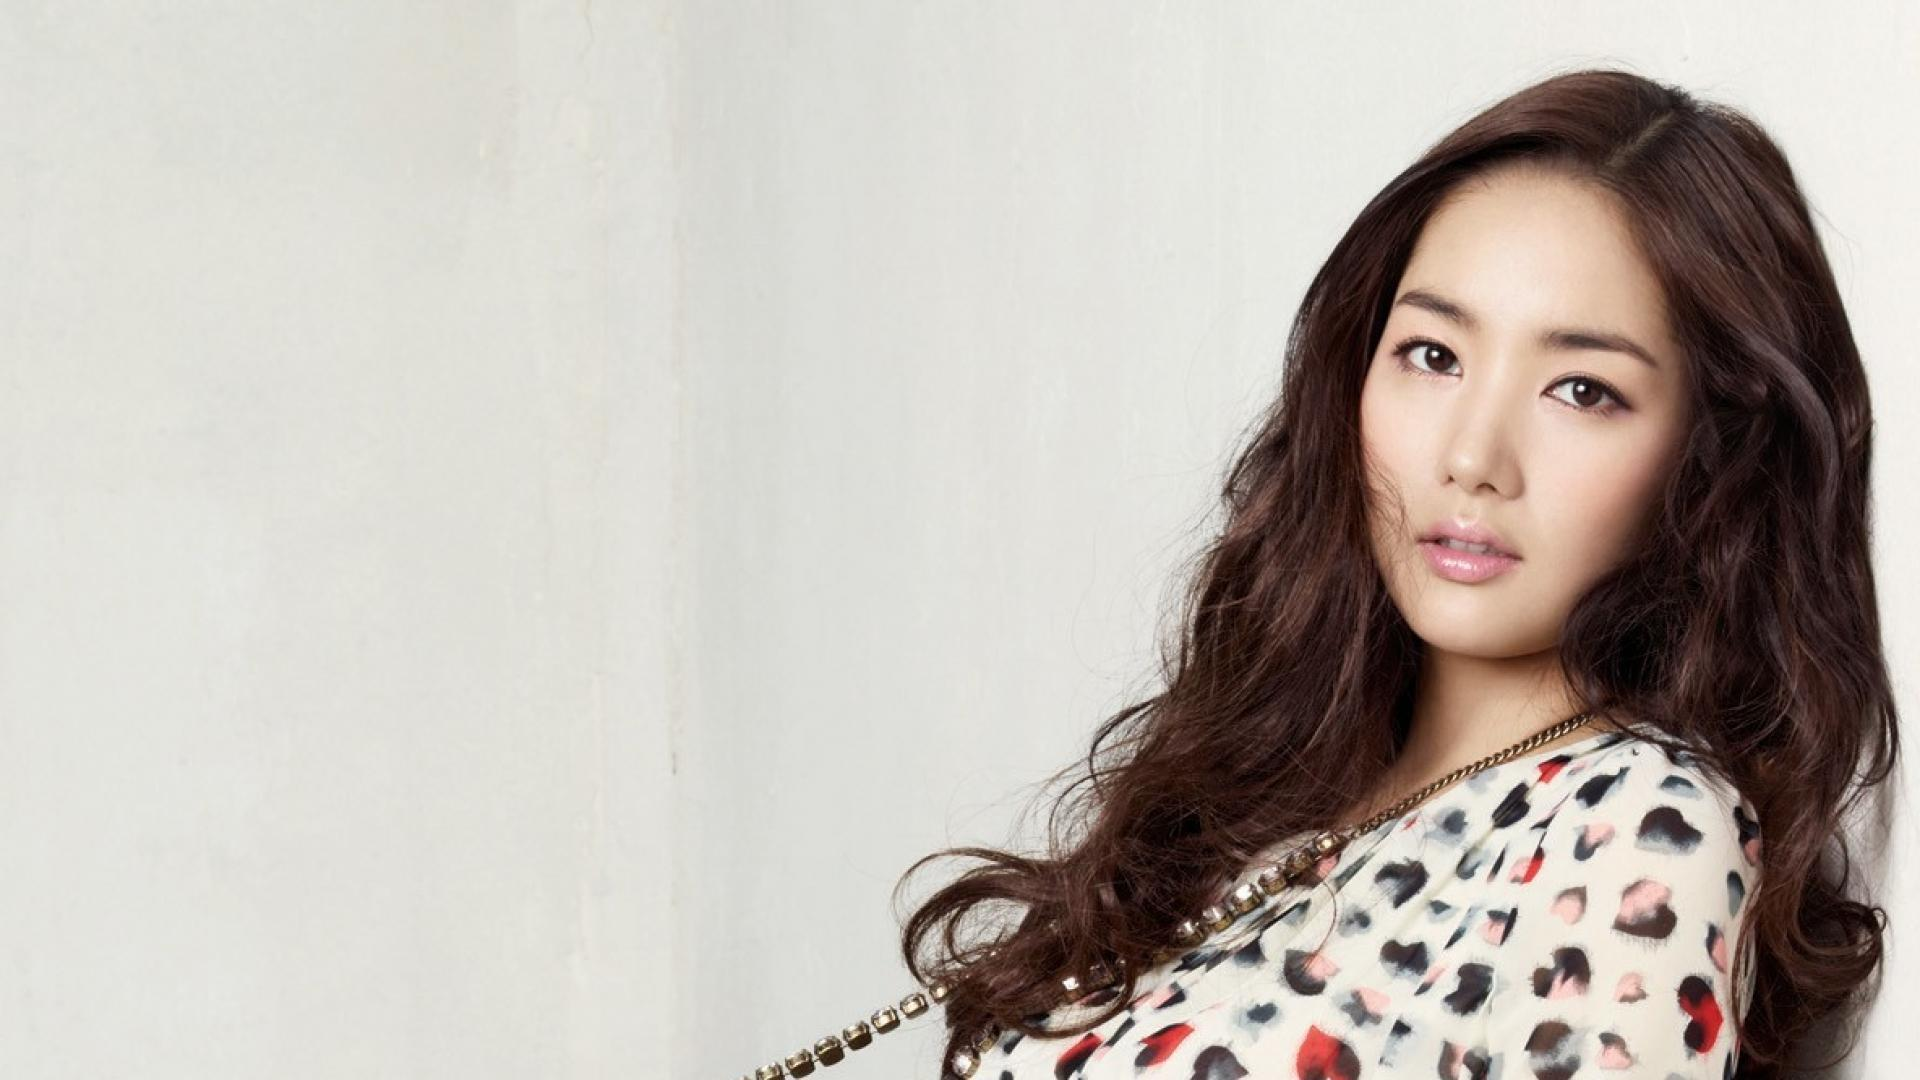 Park Min Young Wallpapers Images Photos Pictures Backgrounds 1920x1080